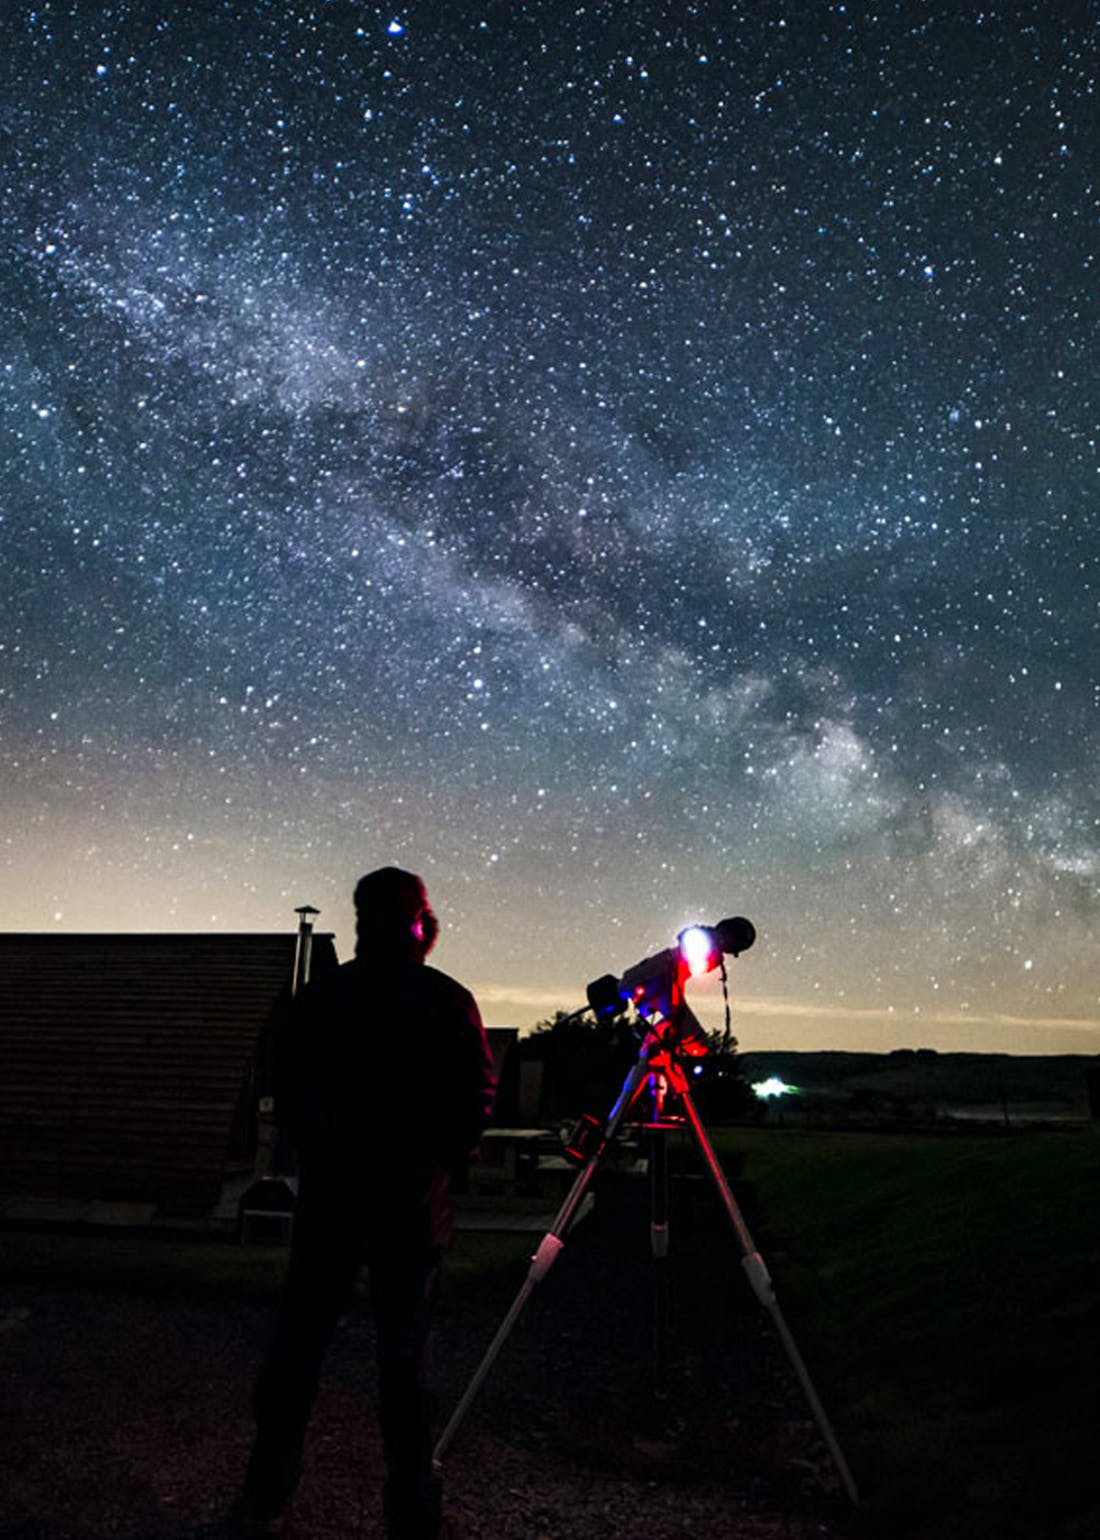 Virgin Experience Days Stargazing for 2 with Dark Sky Wales